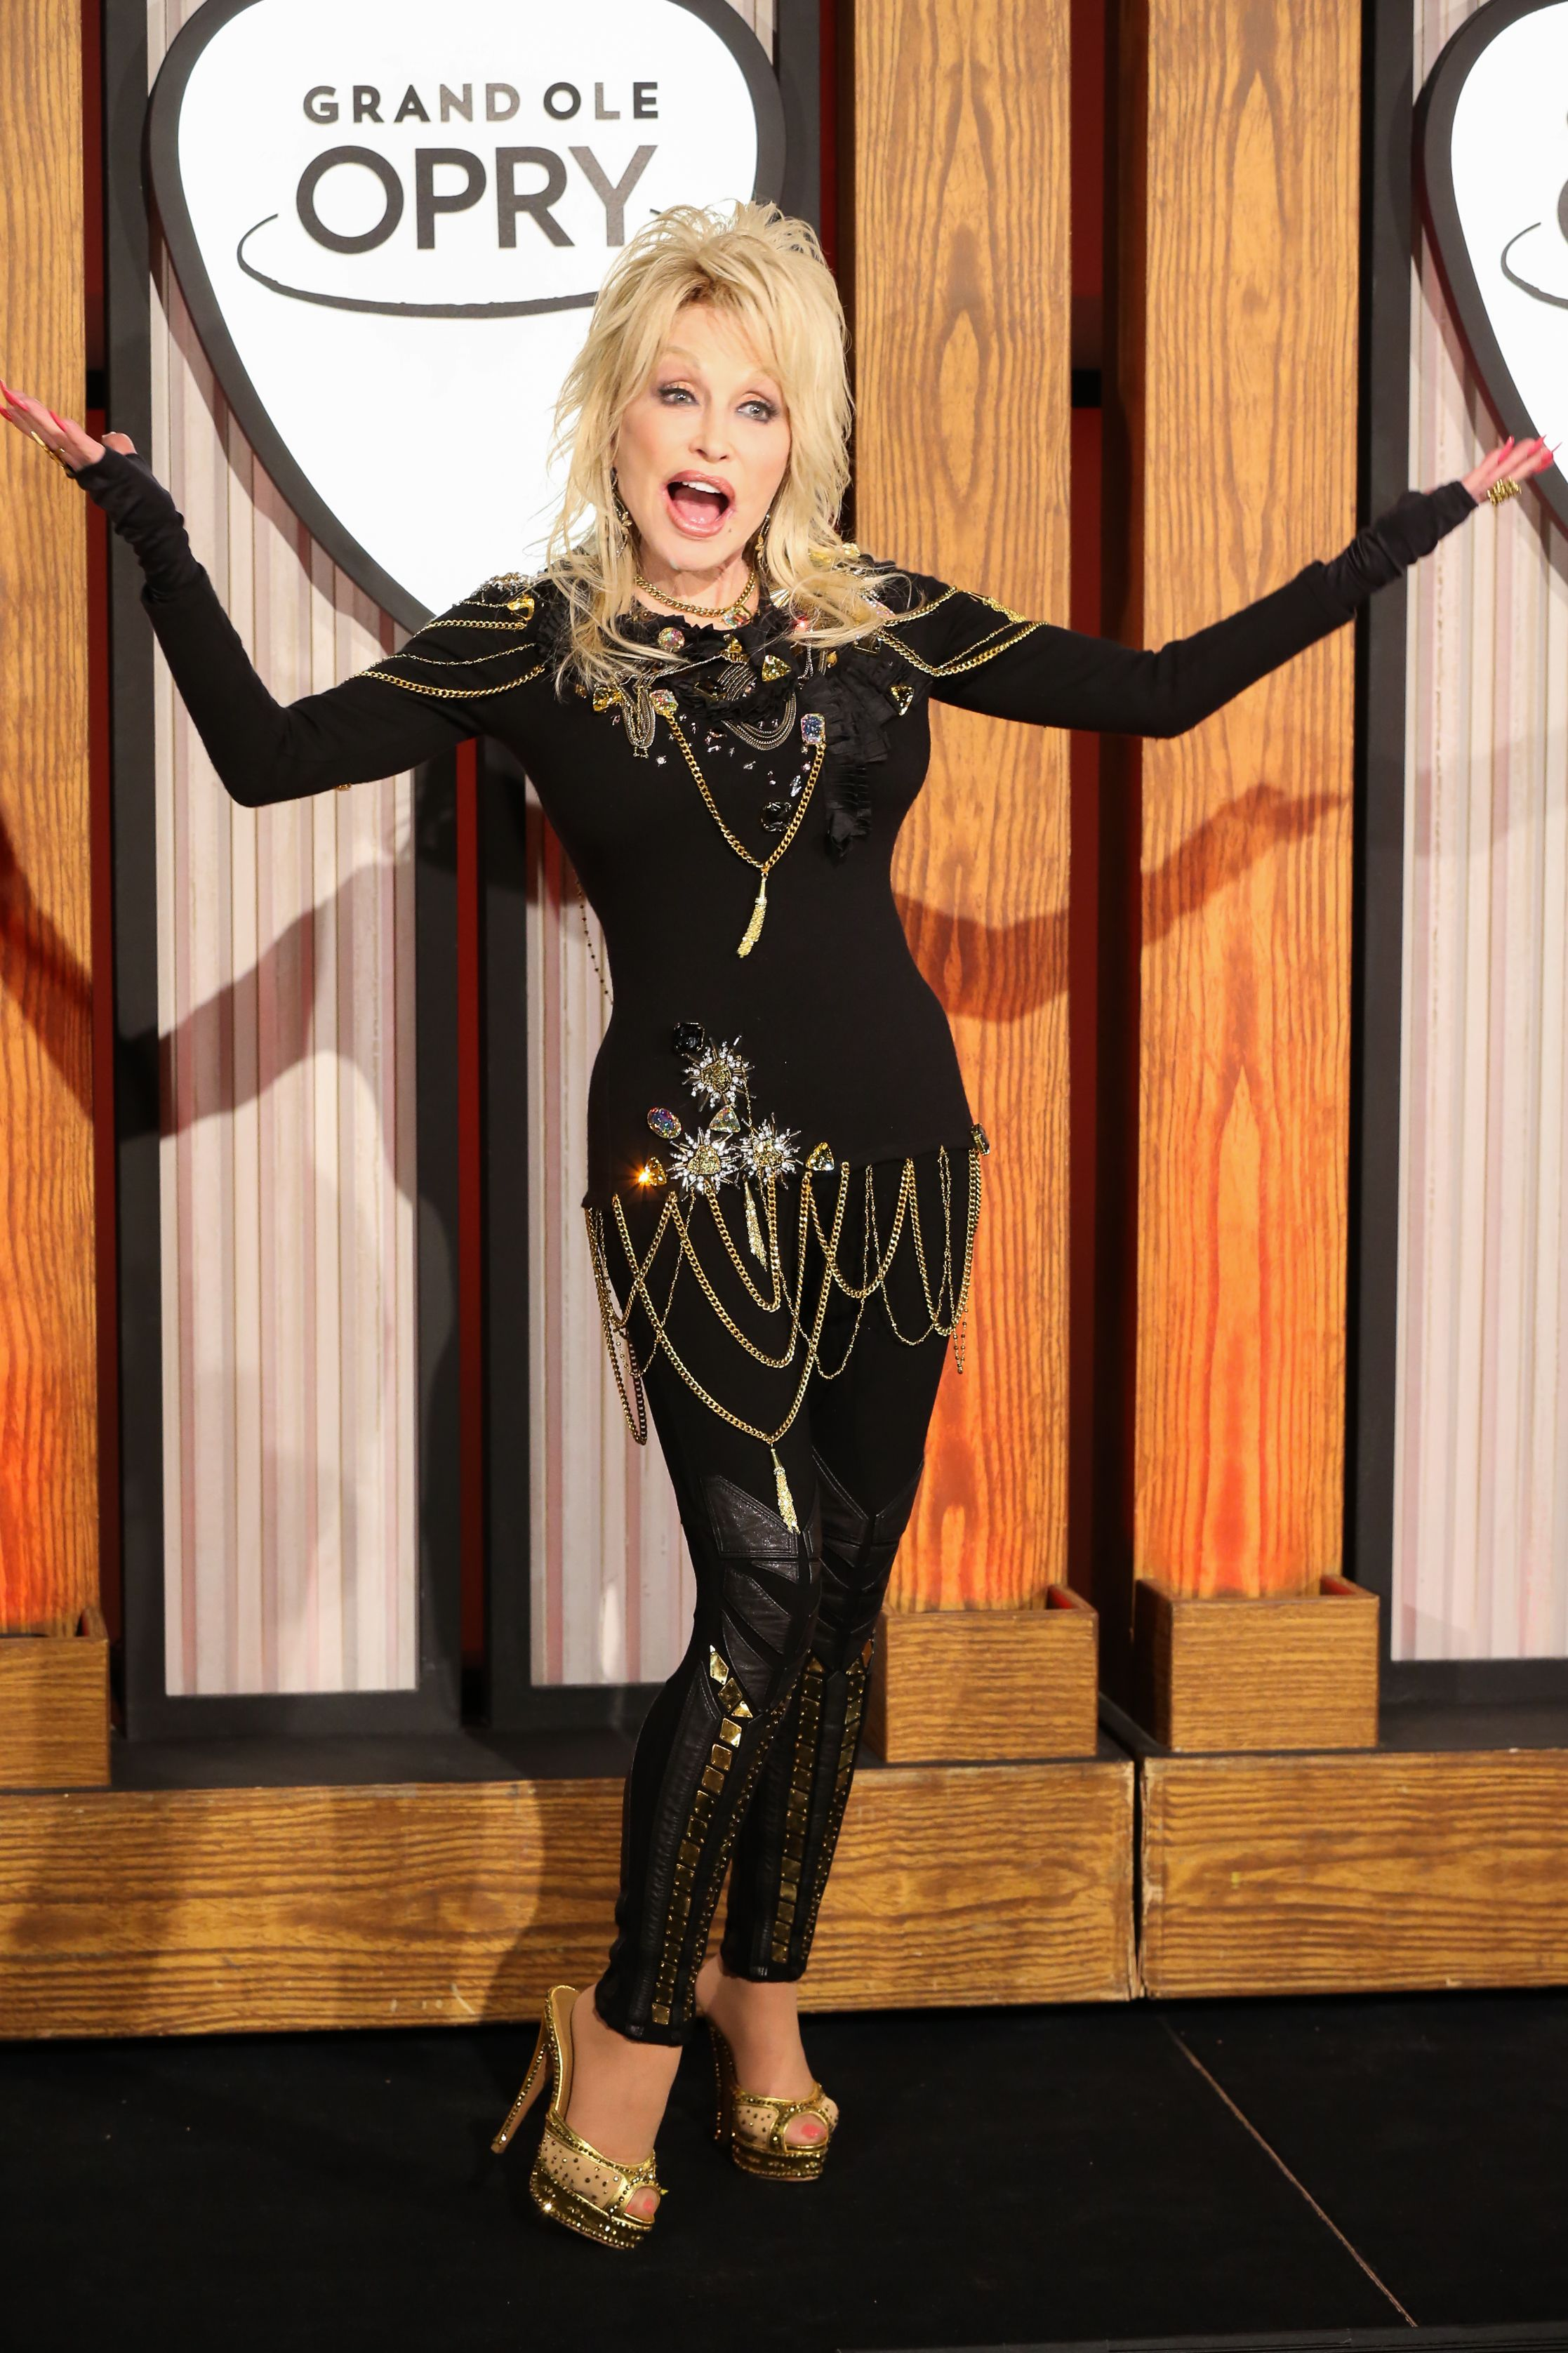 Dolly Parton's Outfit at Her Grand Ole Opry Celebration Was as Wild As You'd Expect